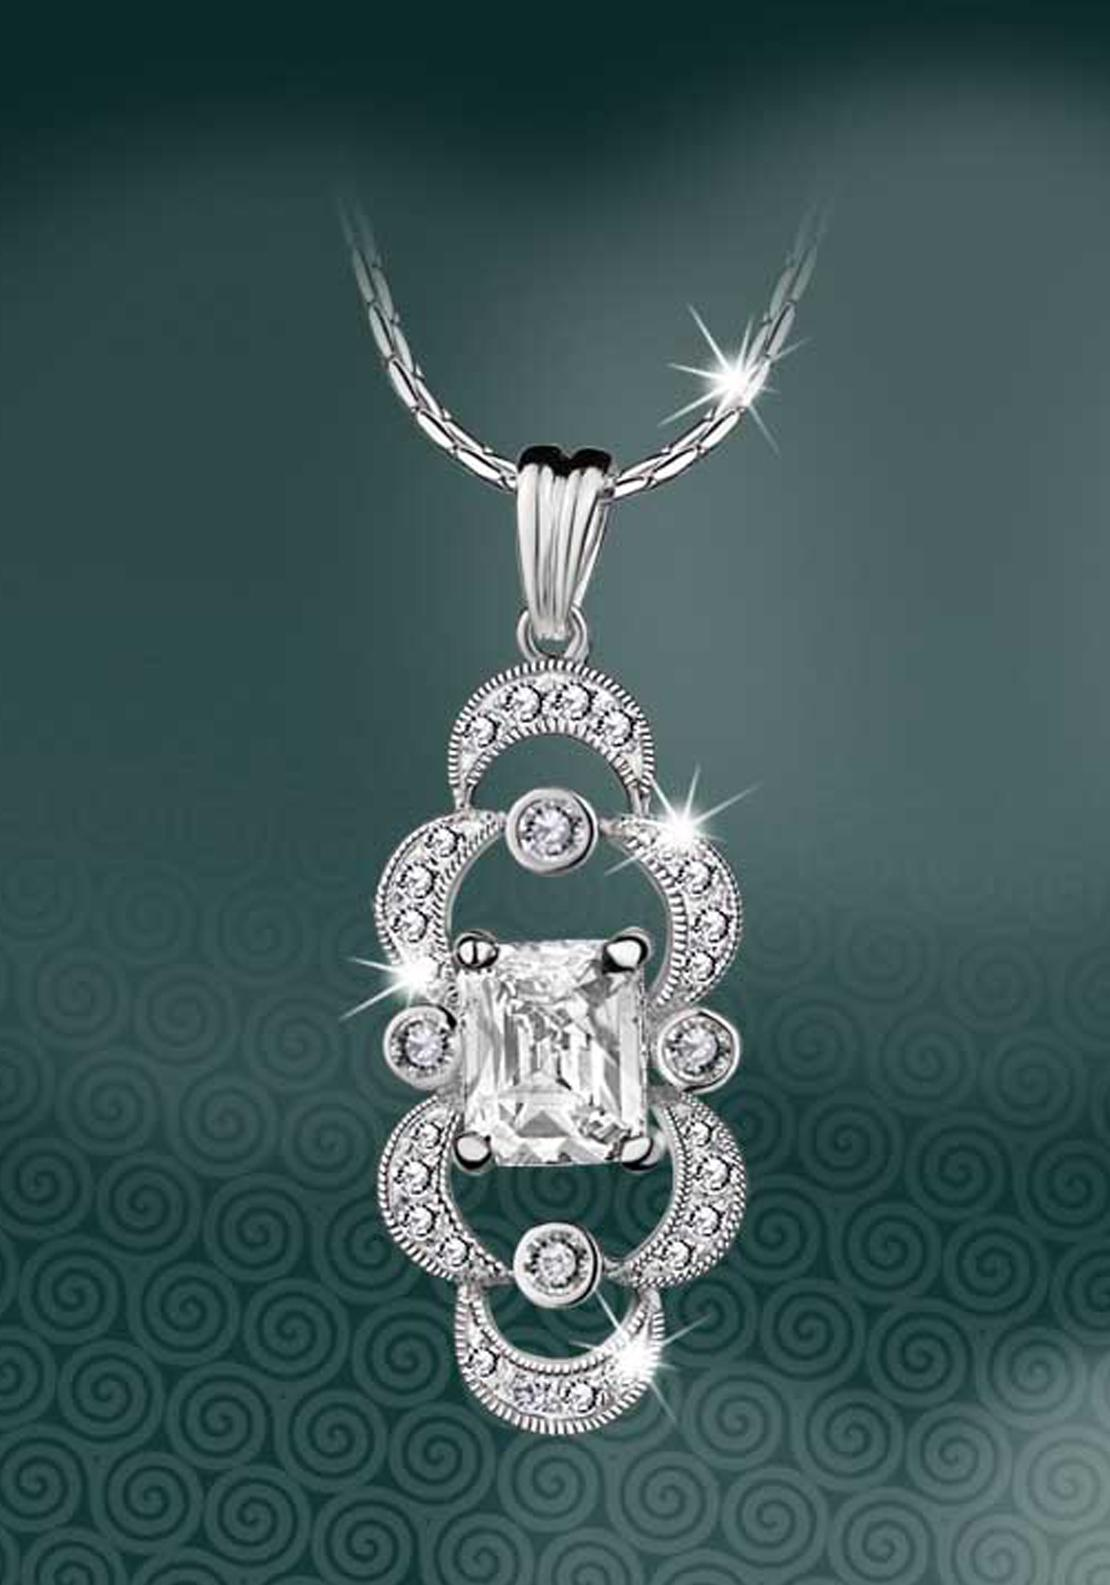 Newbridge Maureen O'Hara Crystal Pendant, Silver / Clear